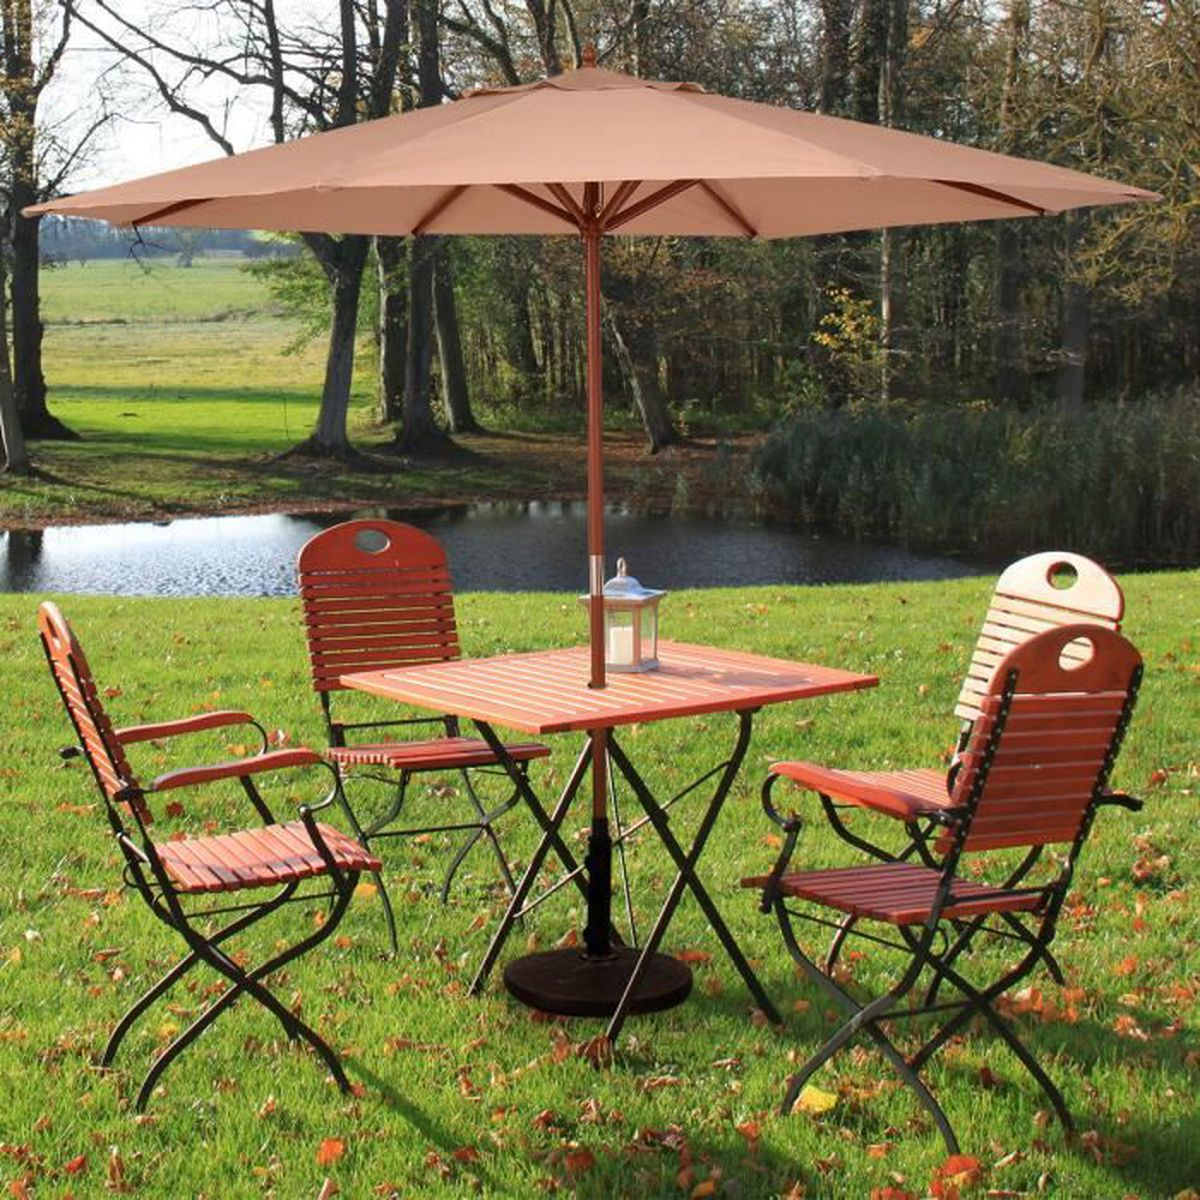 parasol parapluie parasol de march de la cr me solaire de jardin en bois 270cm achat vente. Black Bedroom Furniture Sets. Home Design Ideas